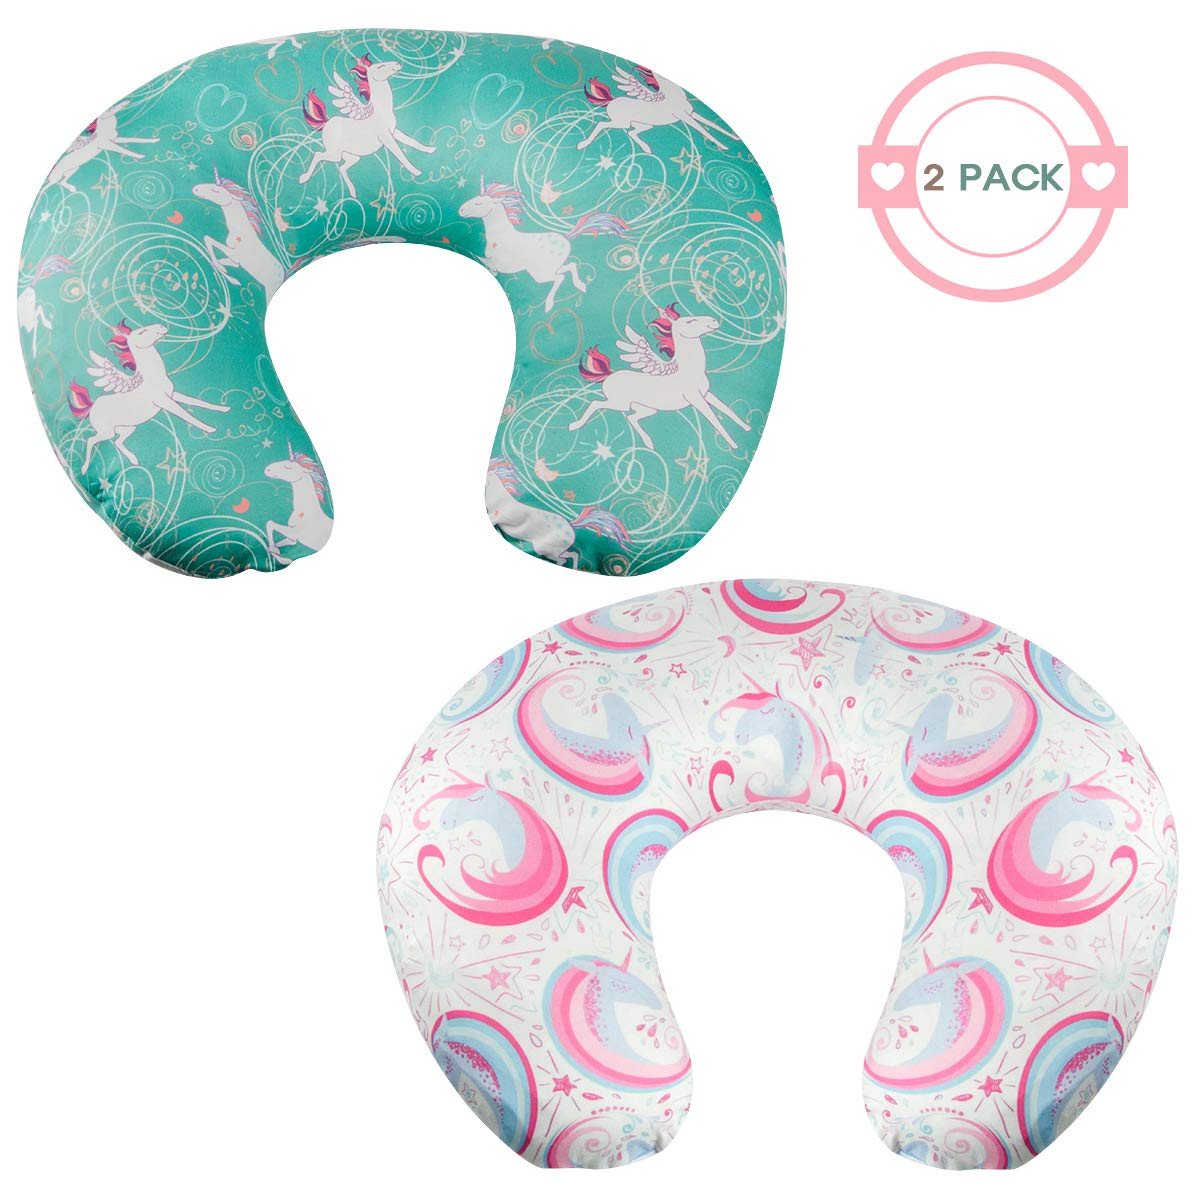 Nidoul Stretchy Nursing Pillow Covers, 2 Pack Unicorn Nursing Pillow Slipcovers for Breastfeeding Moms, Extra Soft Milk Fiber Cover for Standard Infant Nursing Pillows by Nidoul